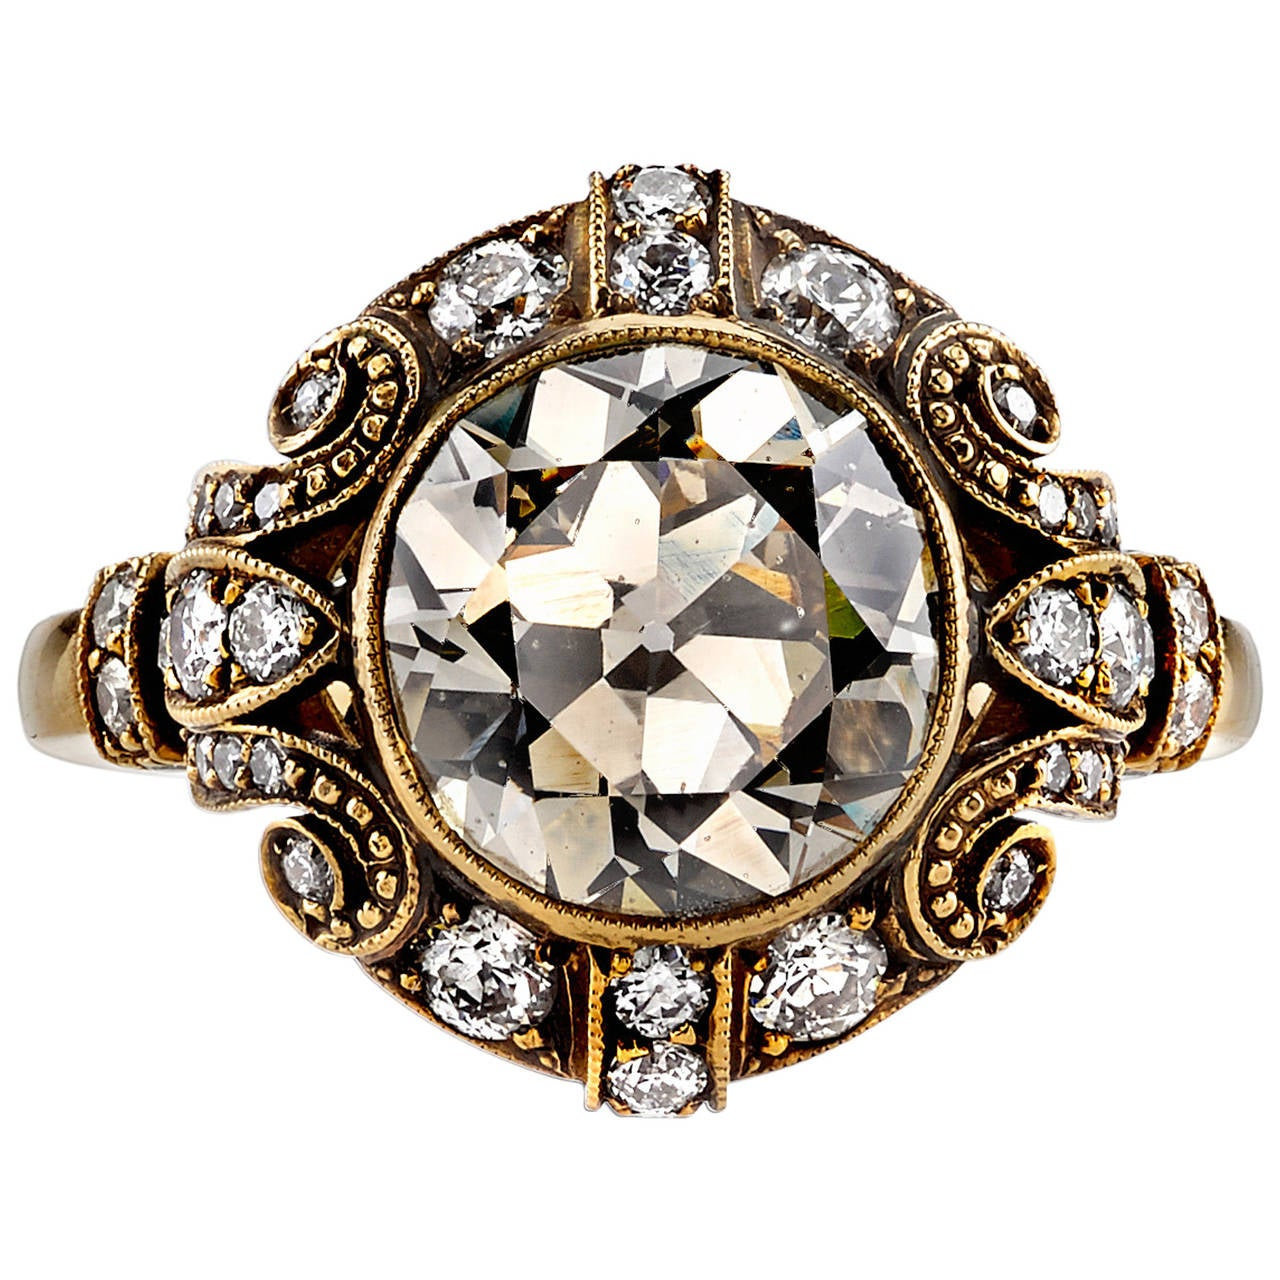 3.07 Carat Old Mine Cut Diamond Gold Engagement Ring For Sale